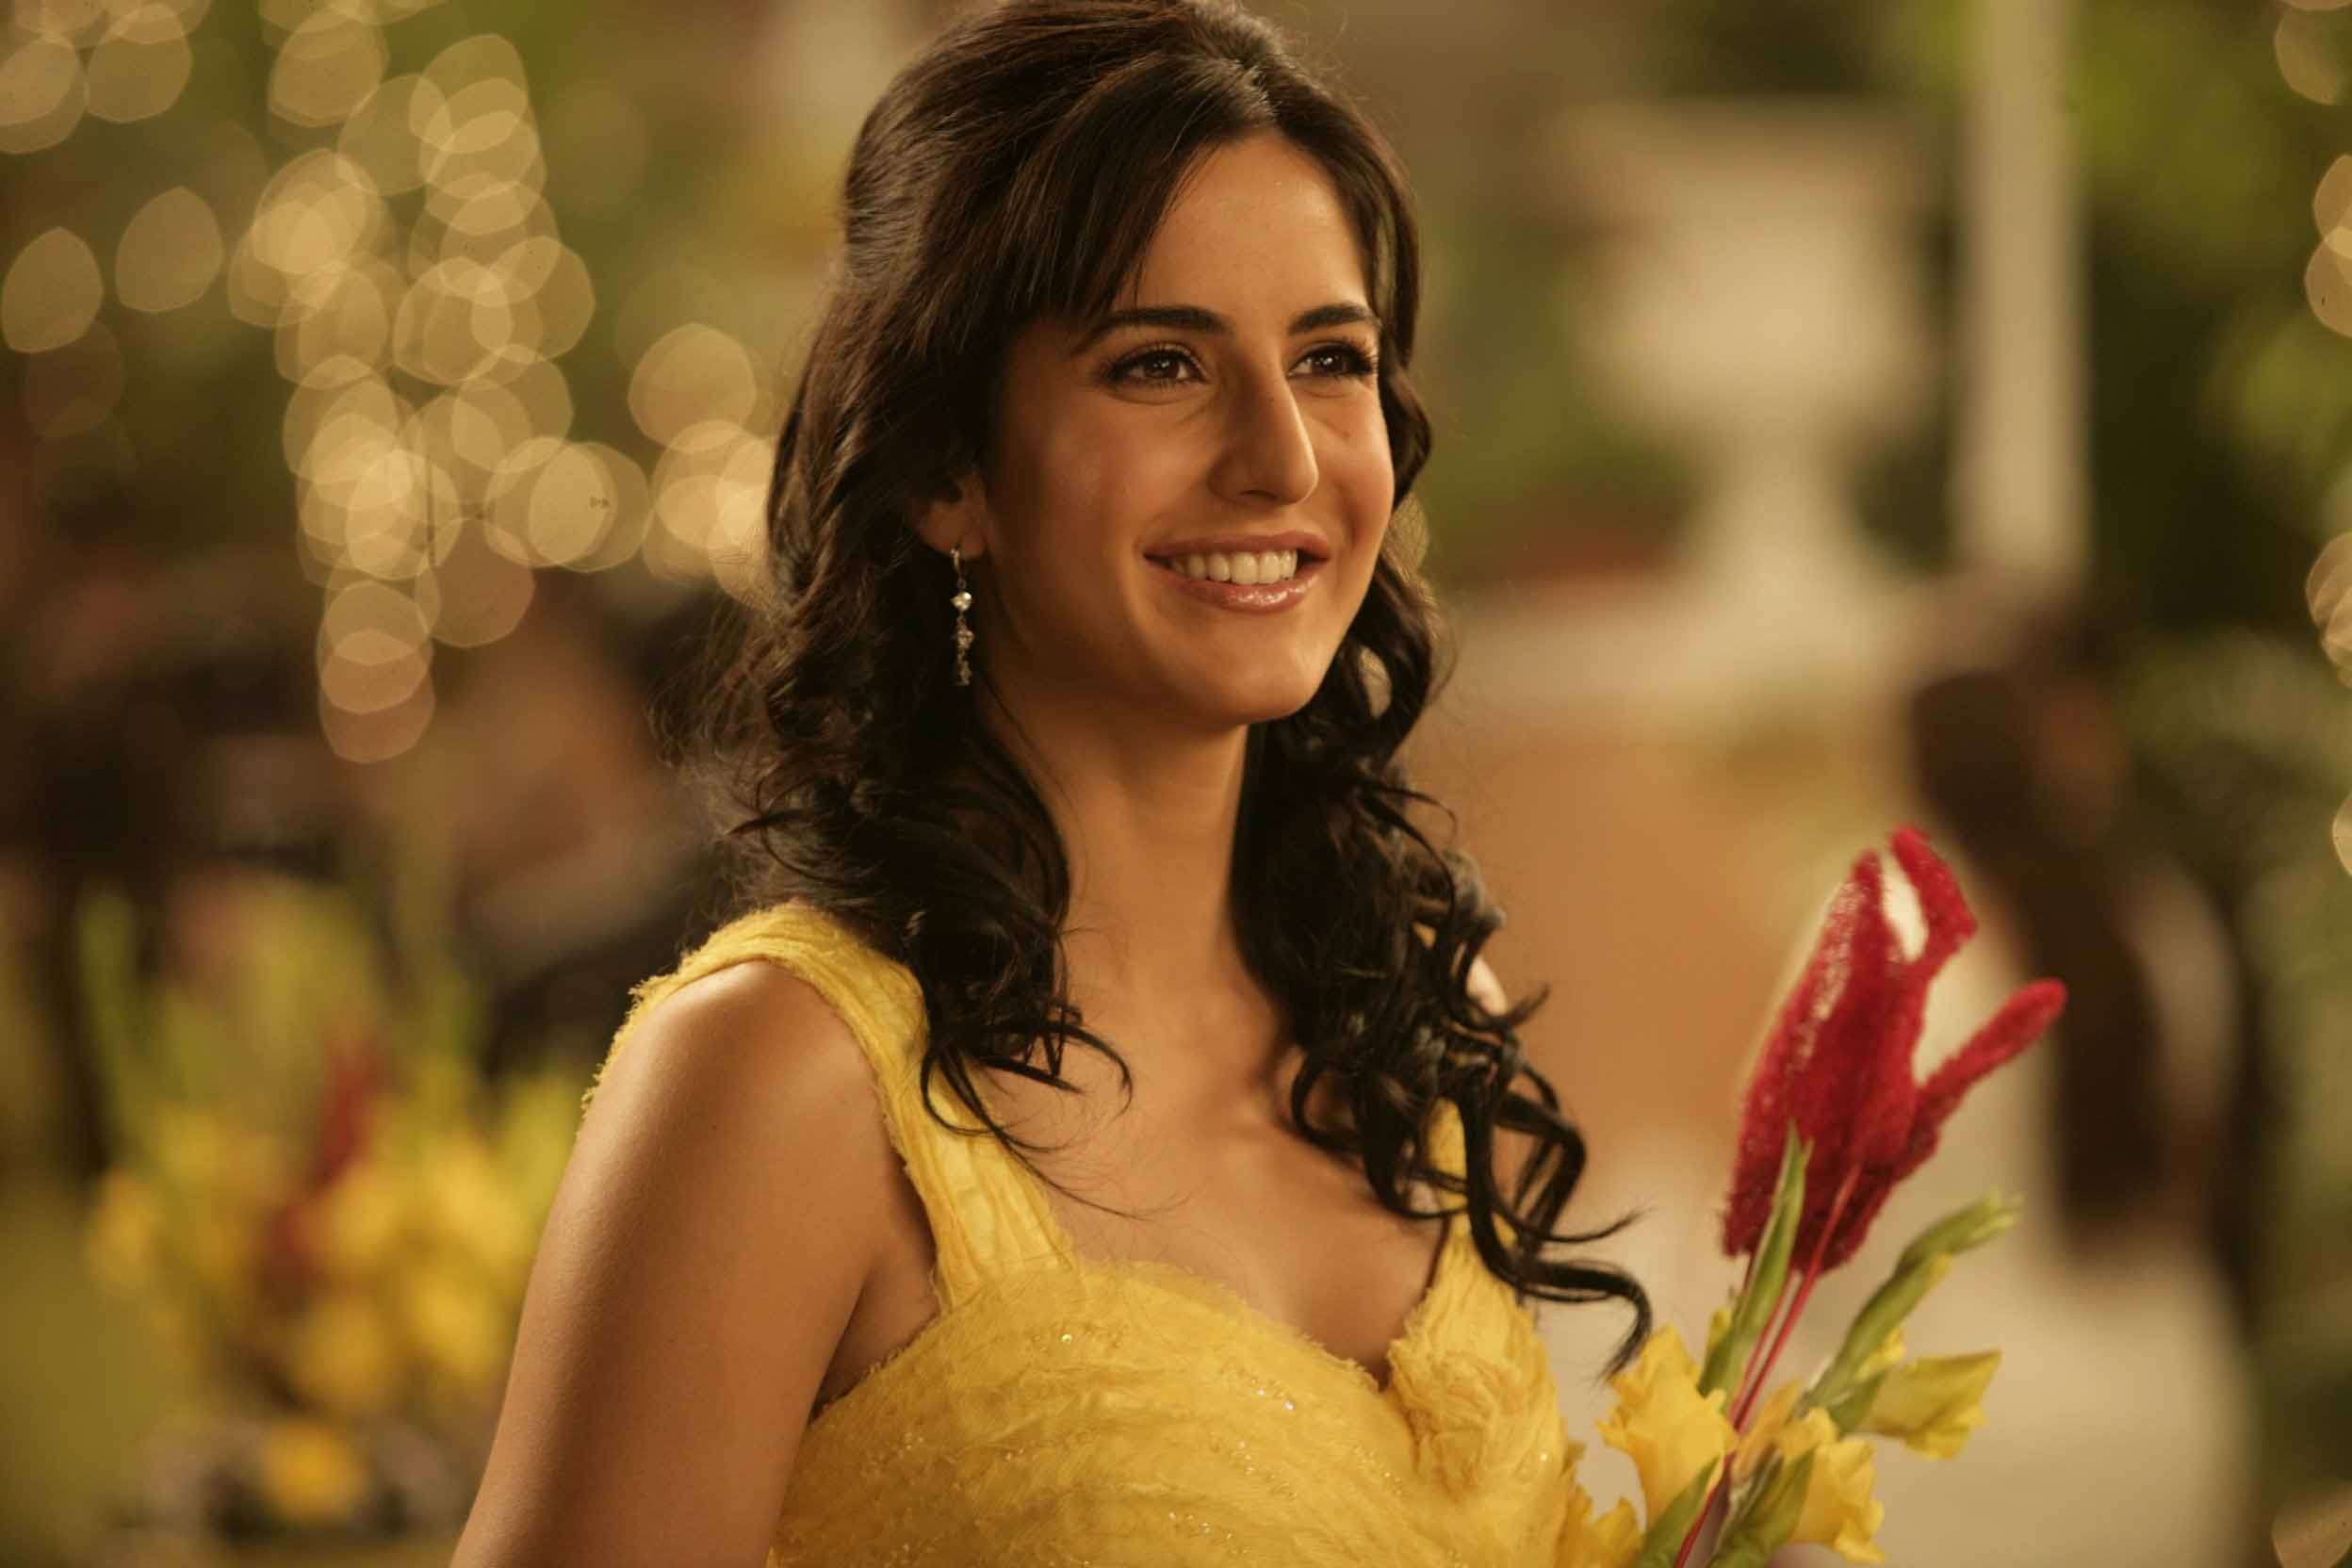 katrina-kaif-in-yellow-dress-hd-wallpapers